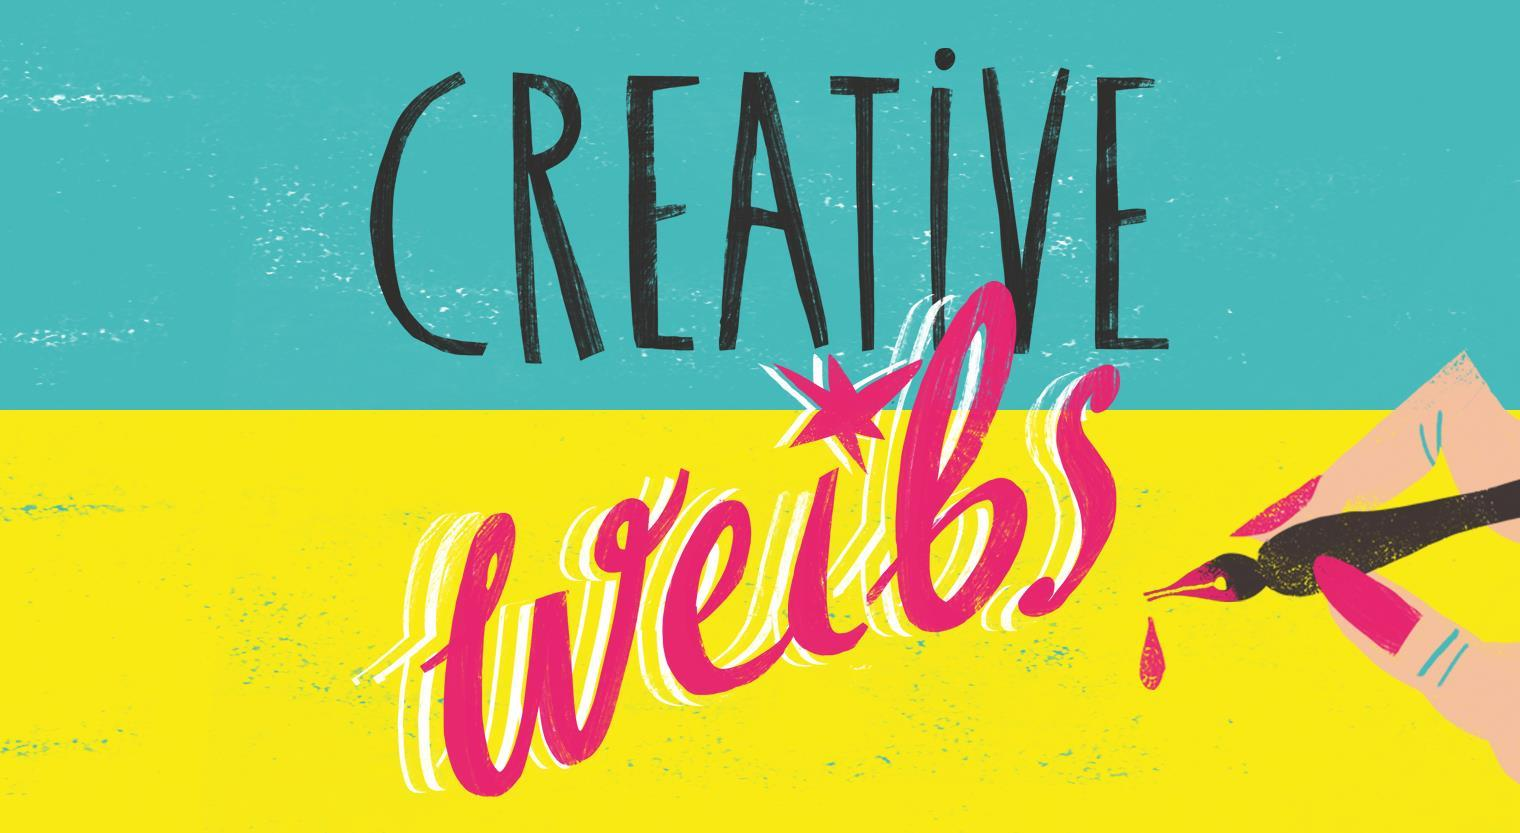 Creative Weibs  - Kreative Frauen an den Start